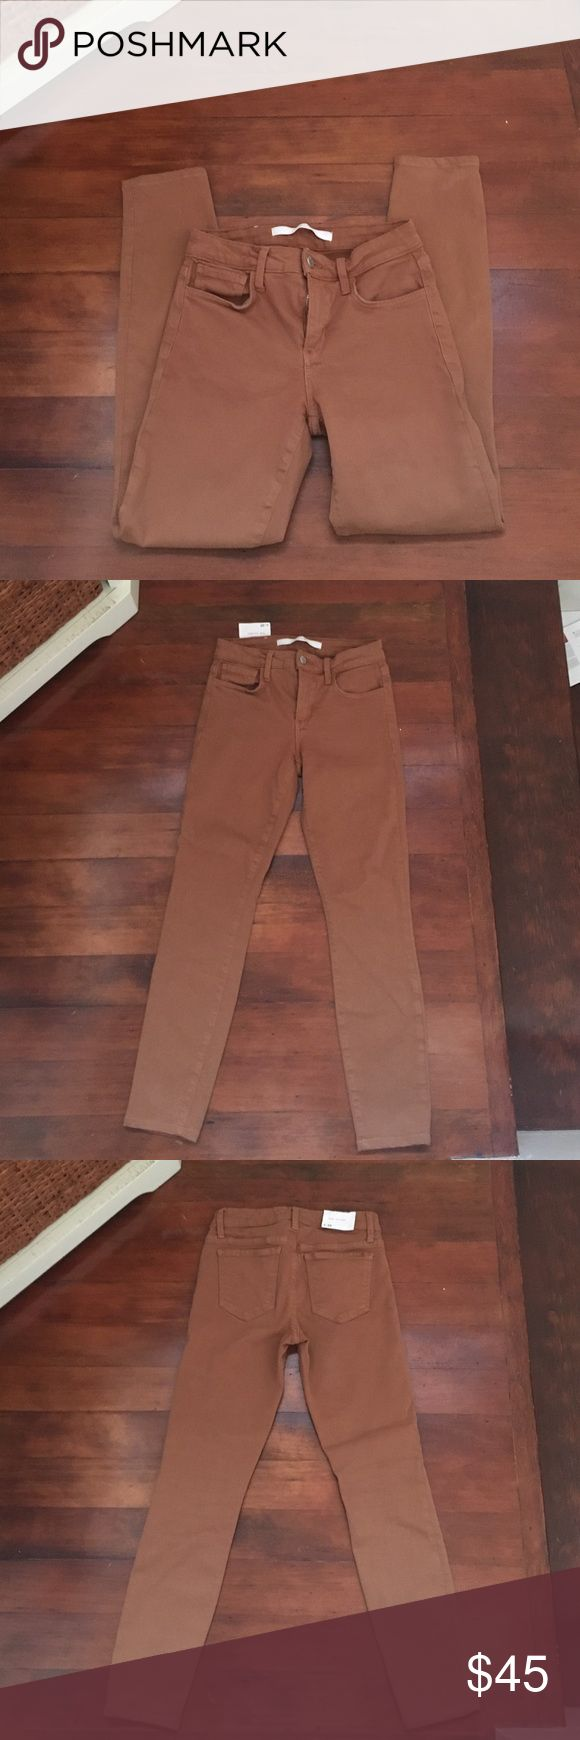 """EUC Joe's Jeans The Skinny in Tan In excellent condition no marks or stains 34"""" in length 26"""" inseam 8.5"""" rise have stretch and form becky to body Joe's Jeans Jeans Skinny"""